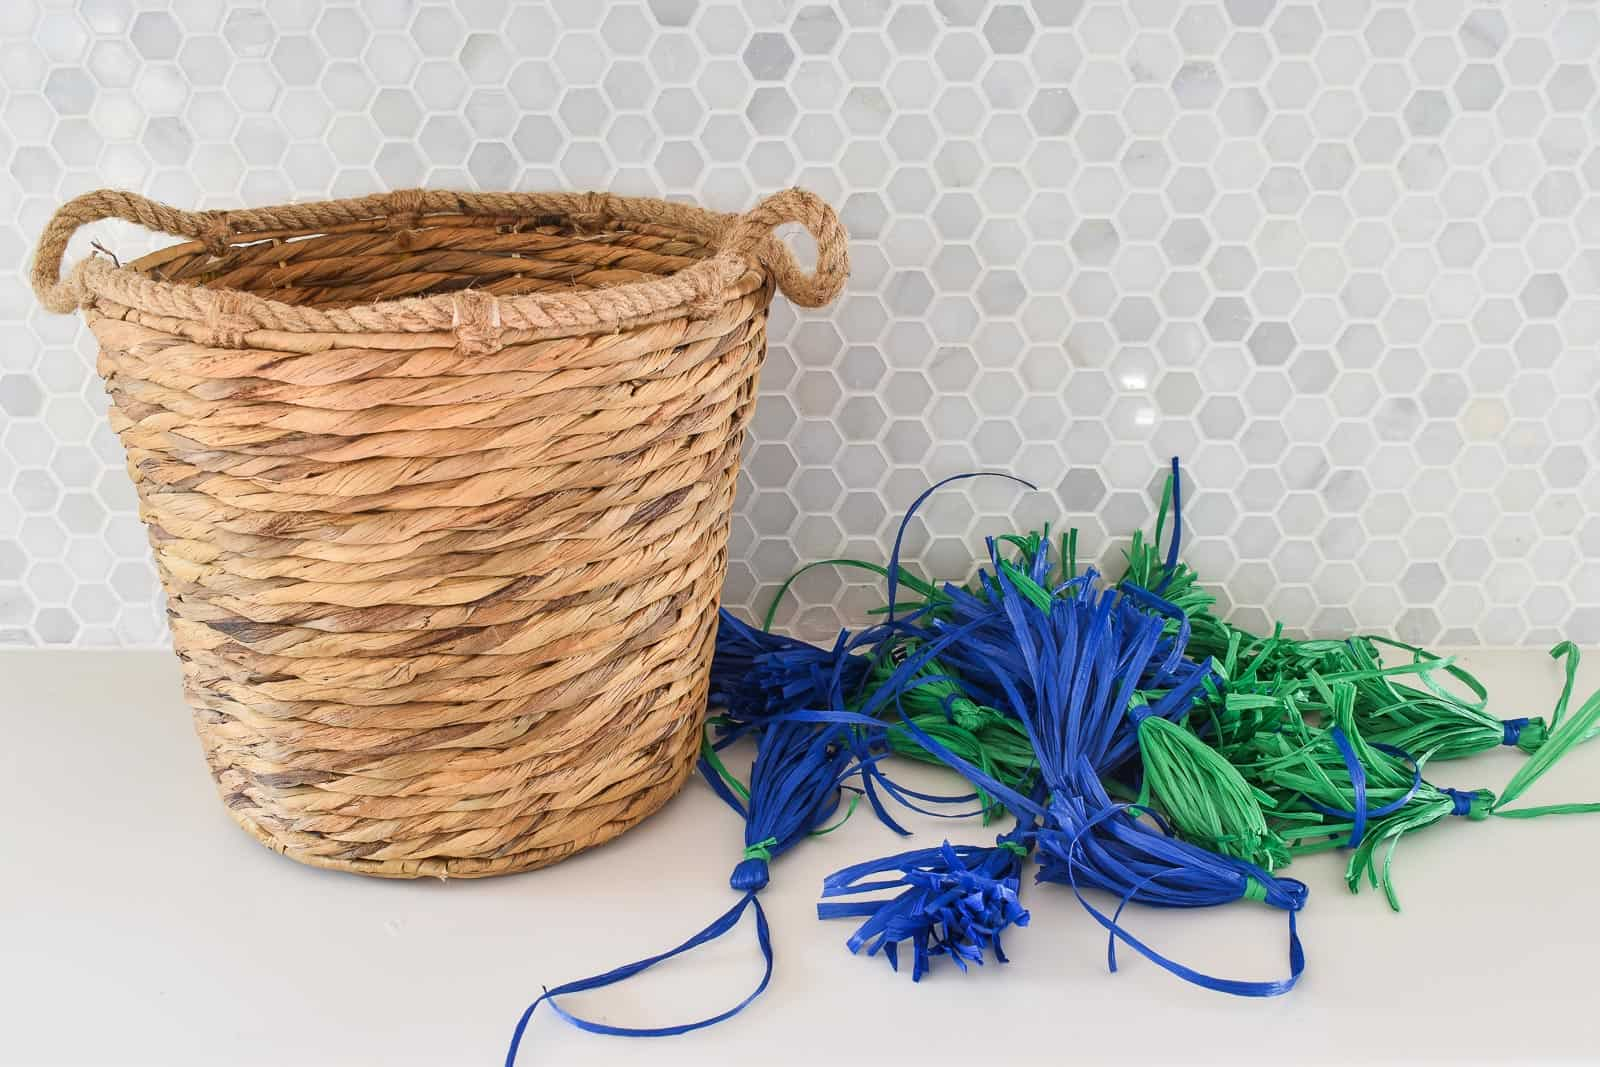 pile of tassels next to basket